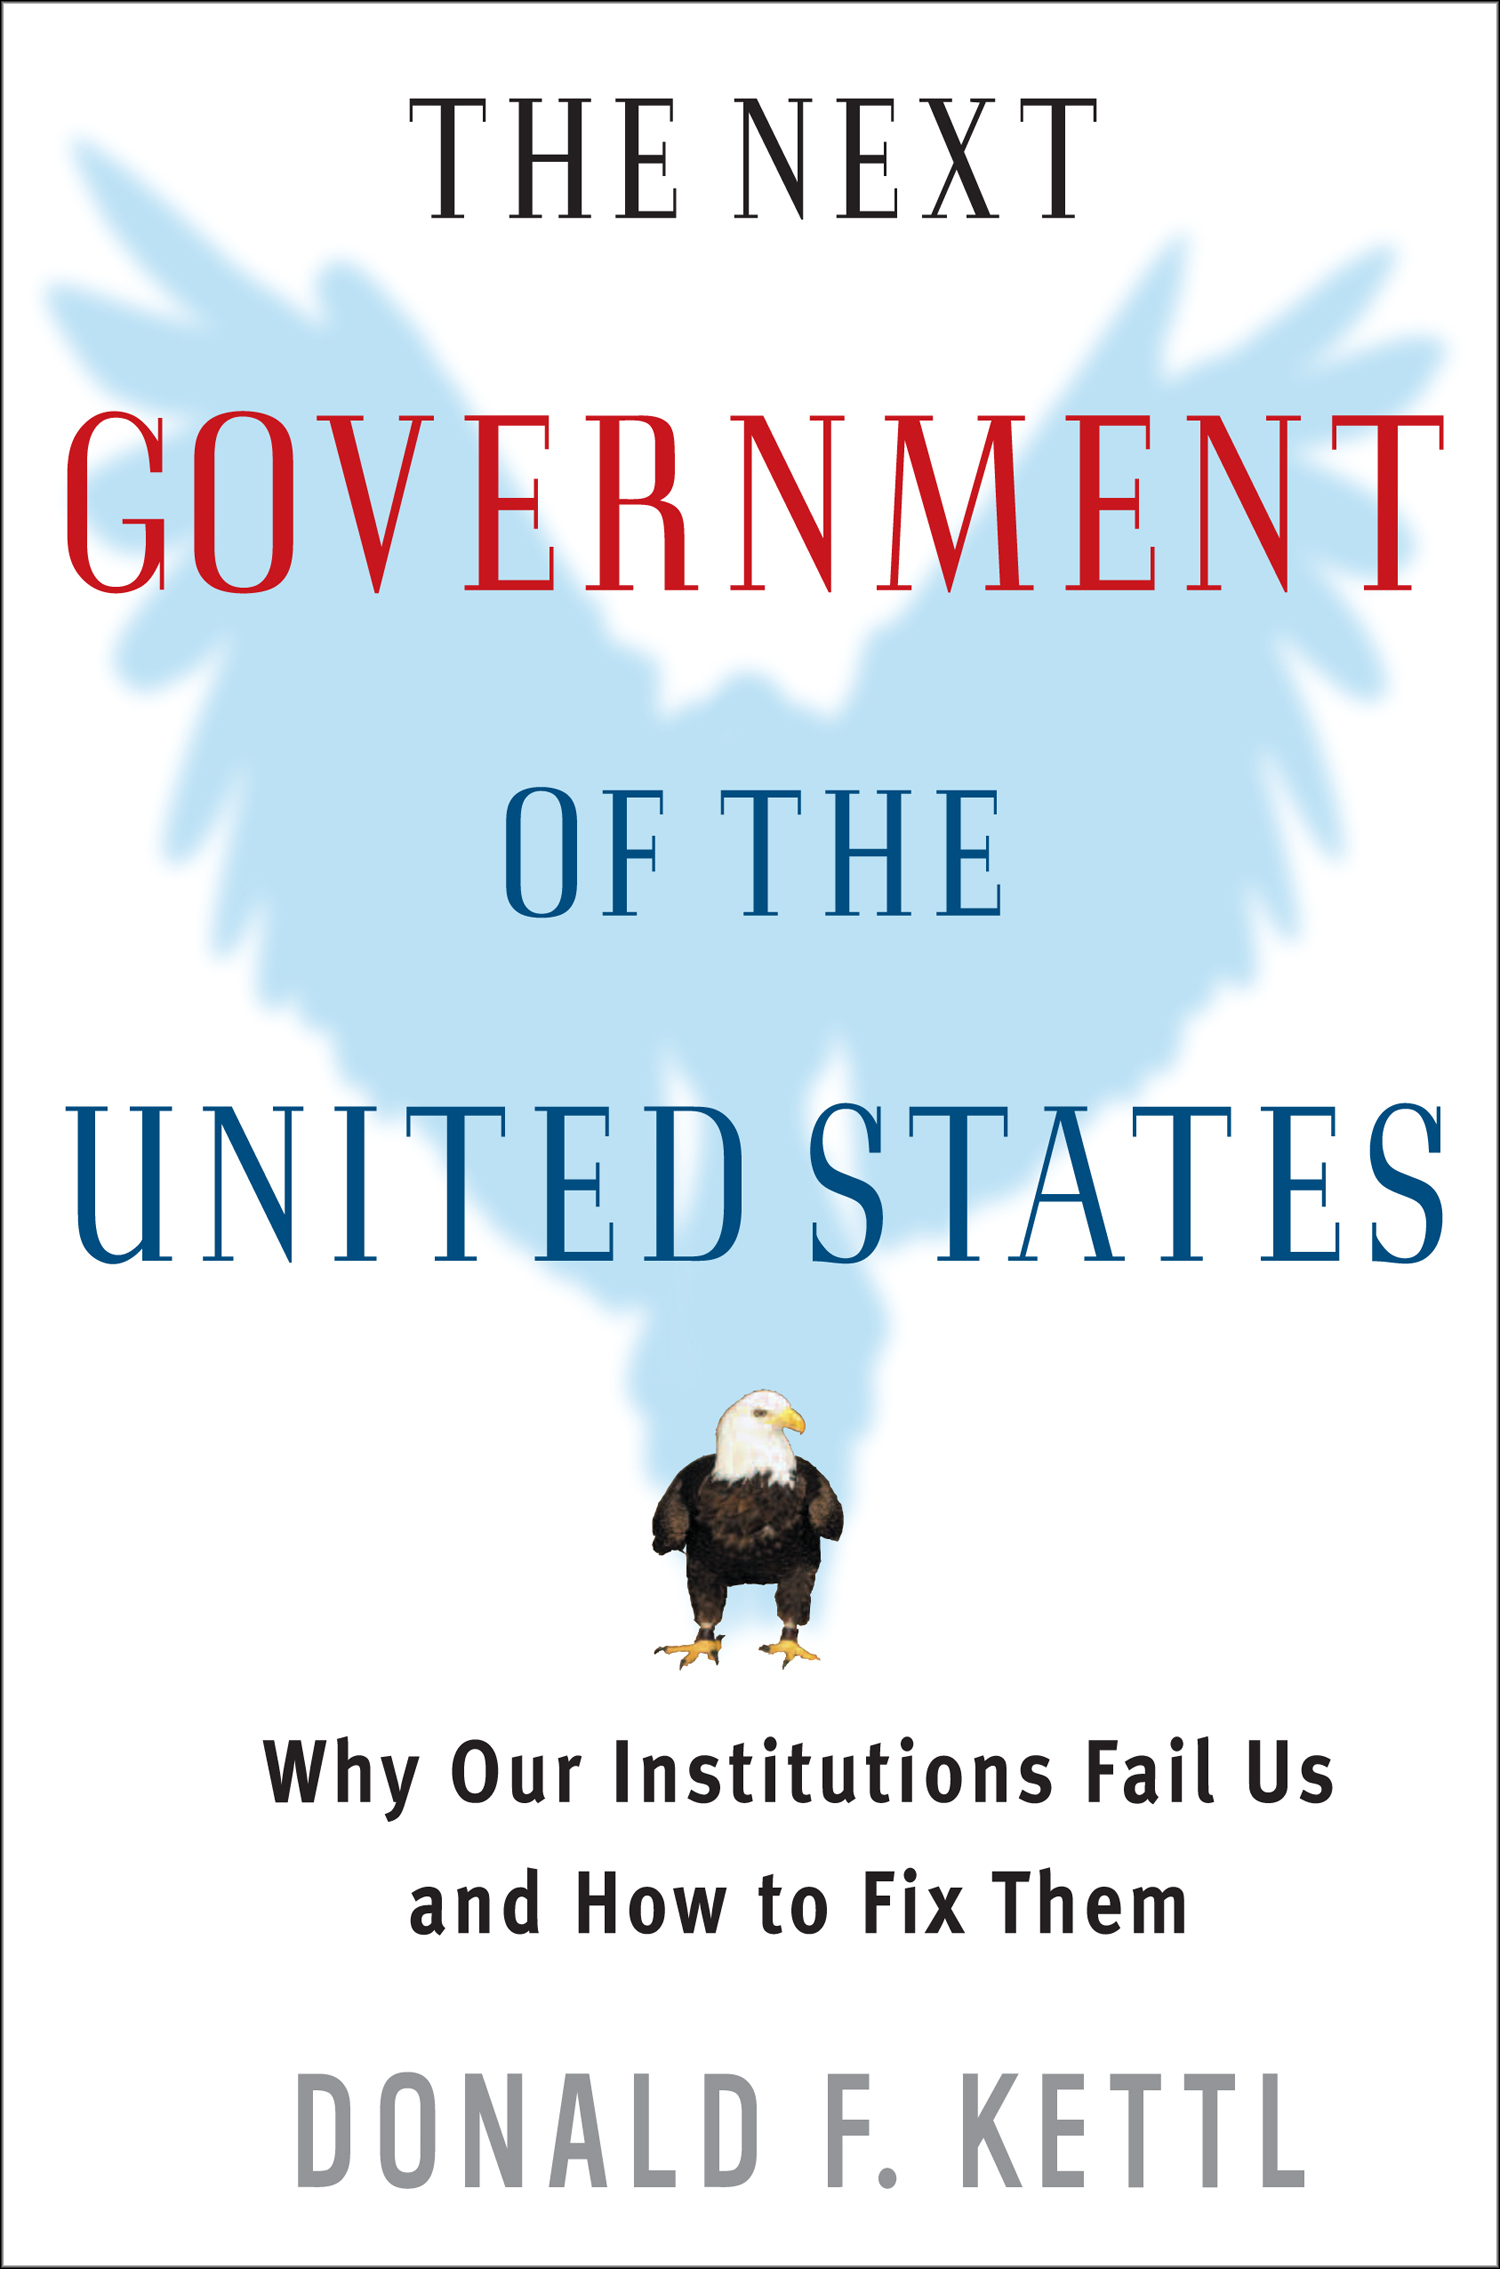 THE-NEXT-GOVERNMENT-OF-THE_UNITED-STATES-tpb-ss6.jpg